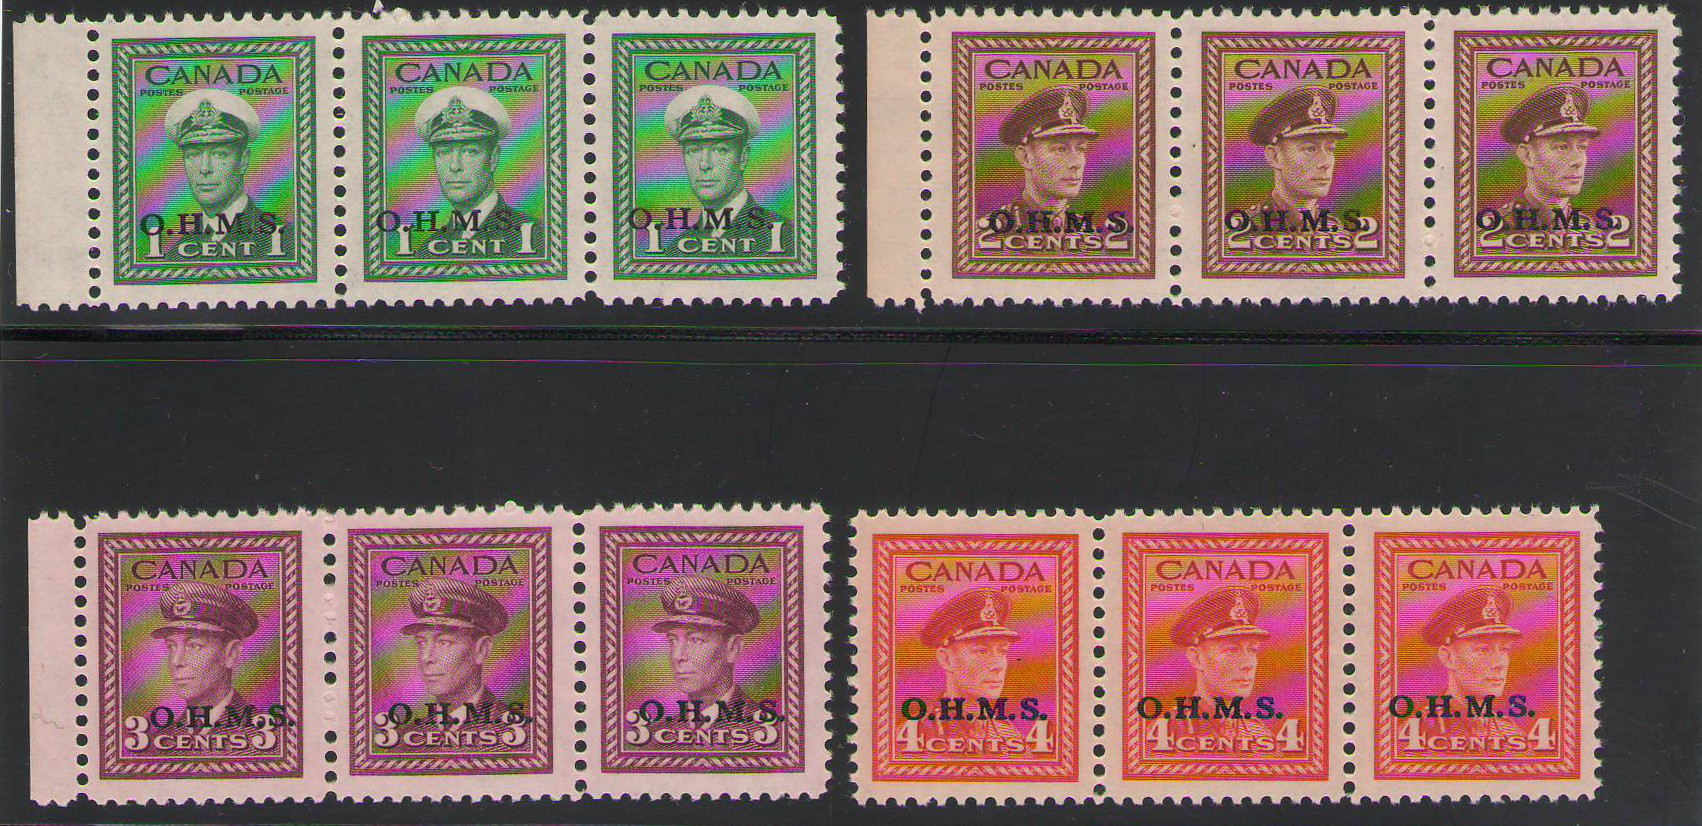 Canada 1949-1950 KGVI War Officials overprinted O.H.M.S, narrow spacign strips of 3 - 1 cent LH rest MNH- Unitrade CV CD$241